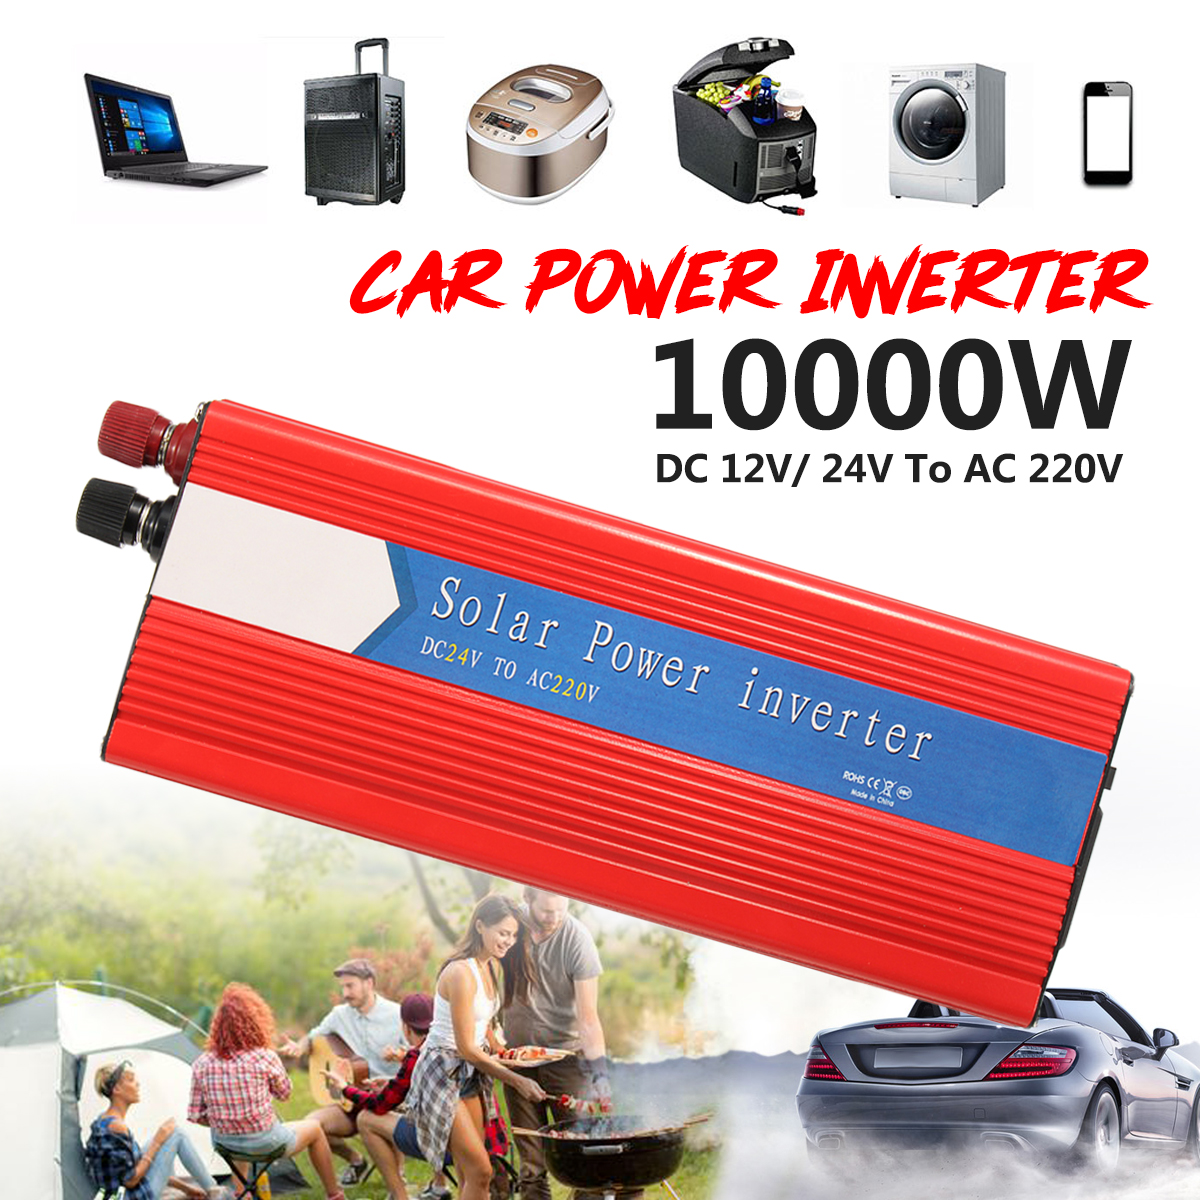 PEAK 10000W Car Power Inverter Wave Converter 12/24V To AC 220/110V USB Modified Sine Voltage Transformer Universal Intelligent 12 24v to ac 220 110v car power inverter converter peak 10000w usb modified sine wave voltage transformer universal intelligent